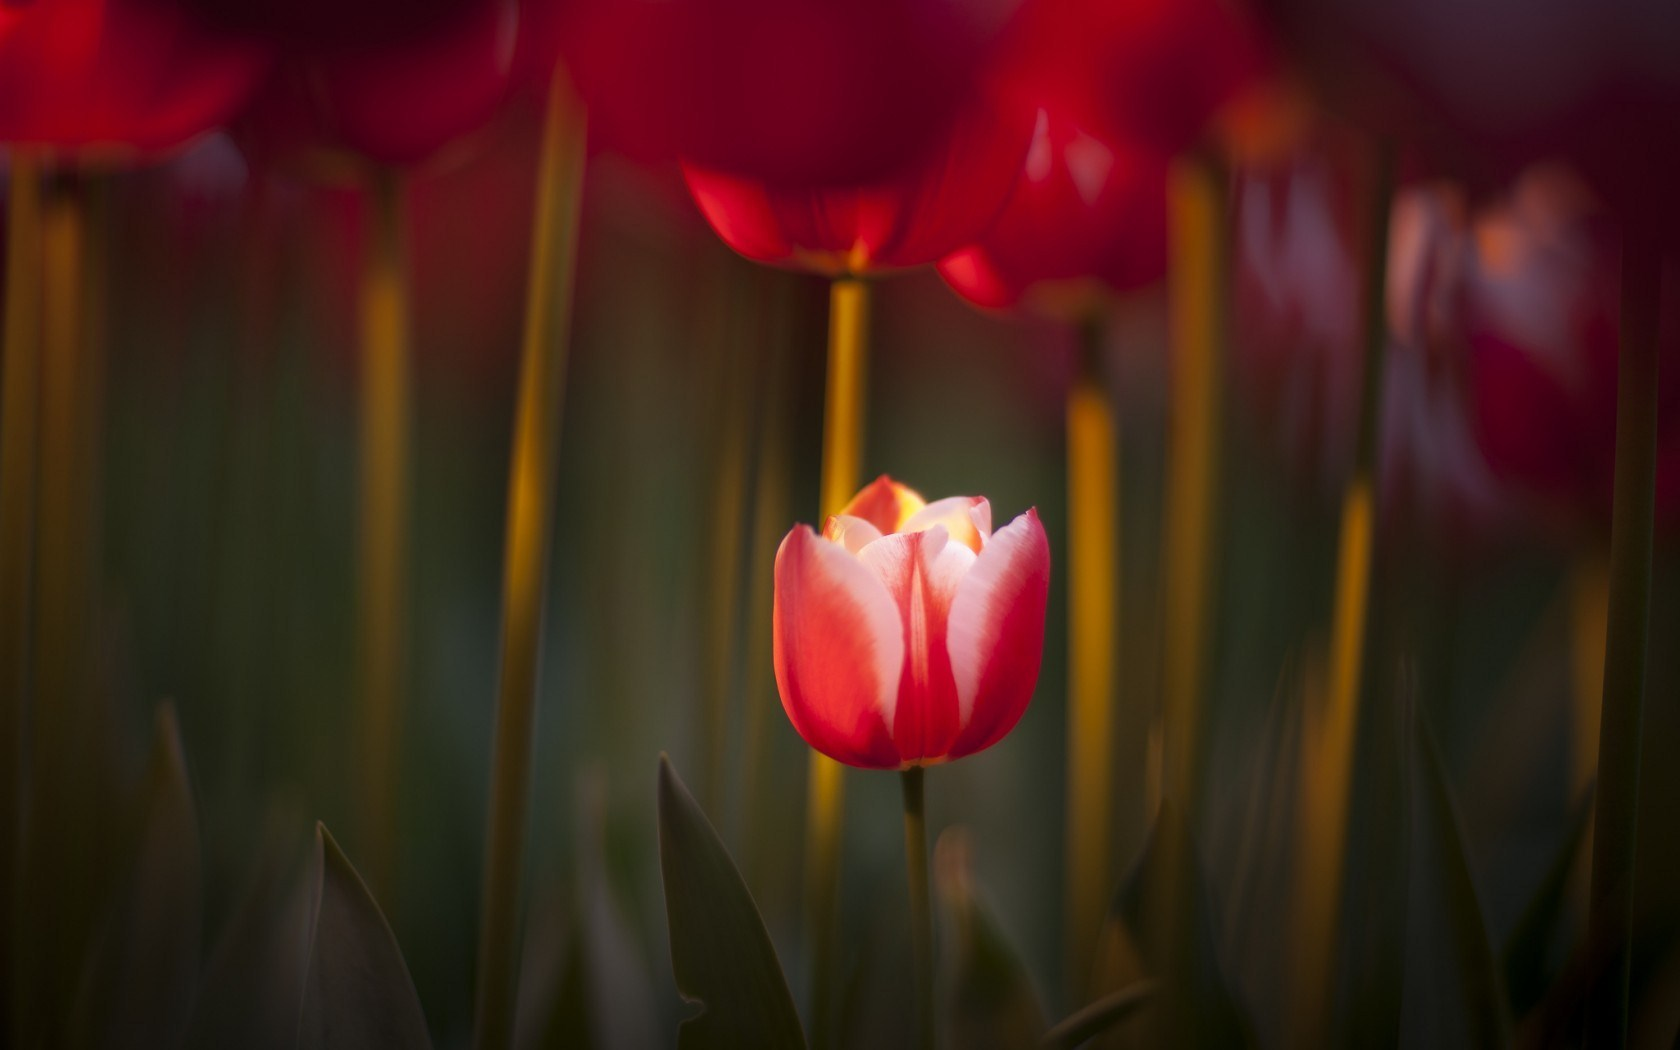 Focus Tulips Red Spring Nature